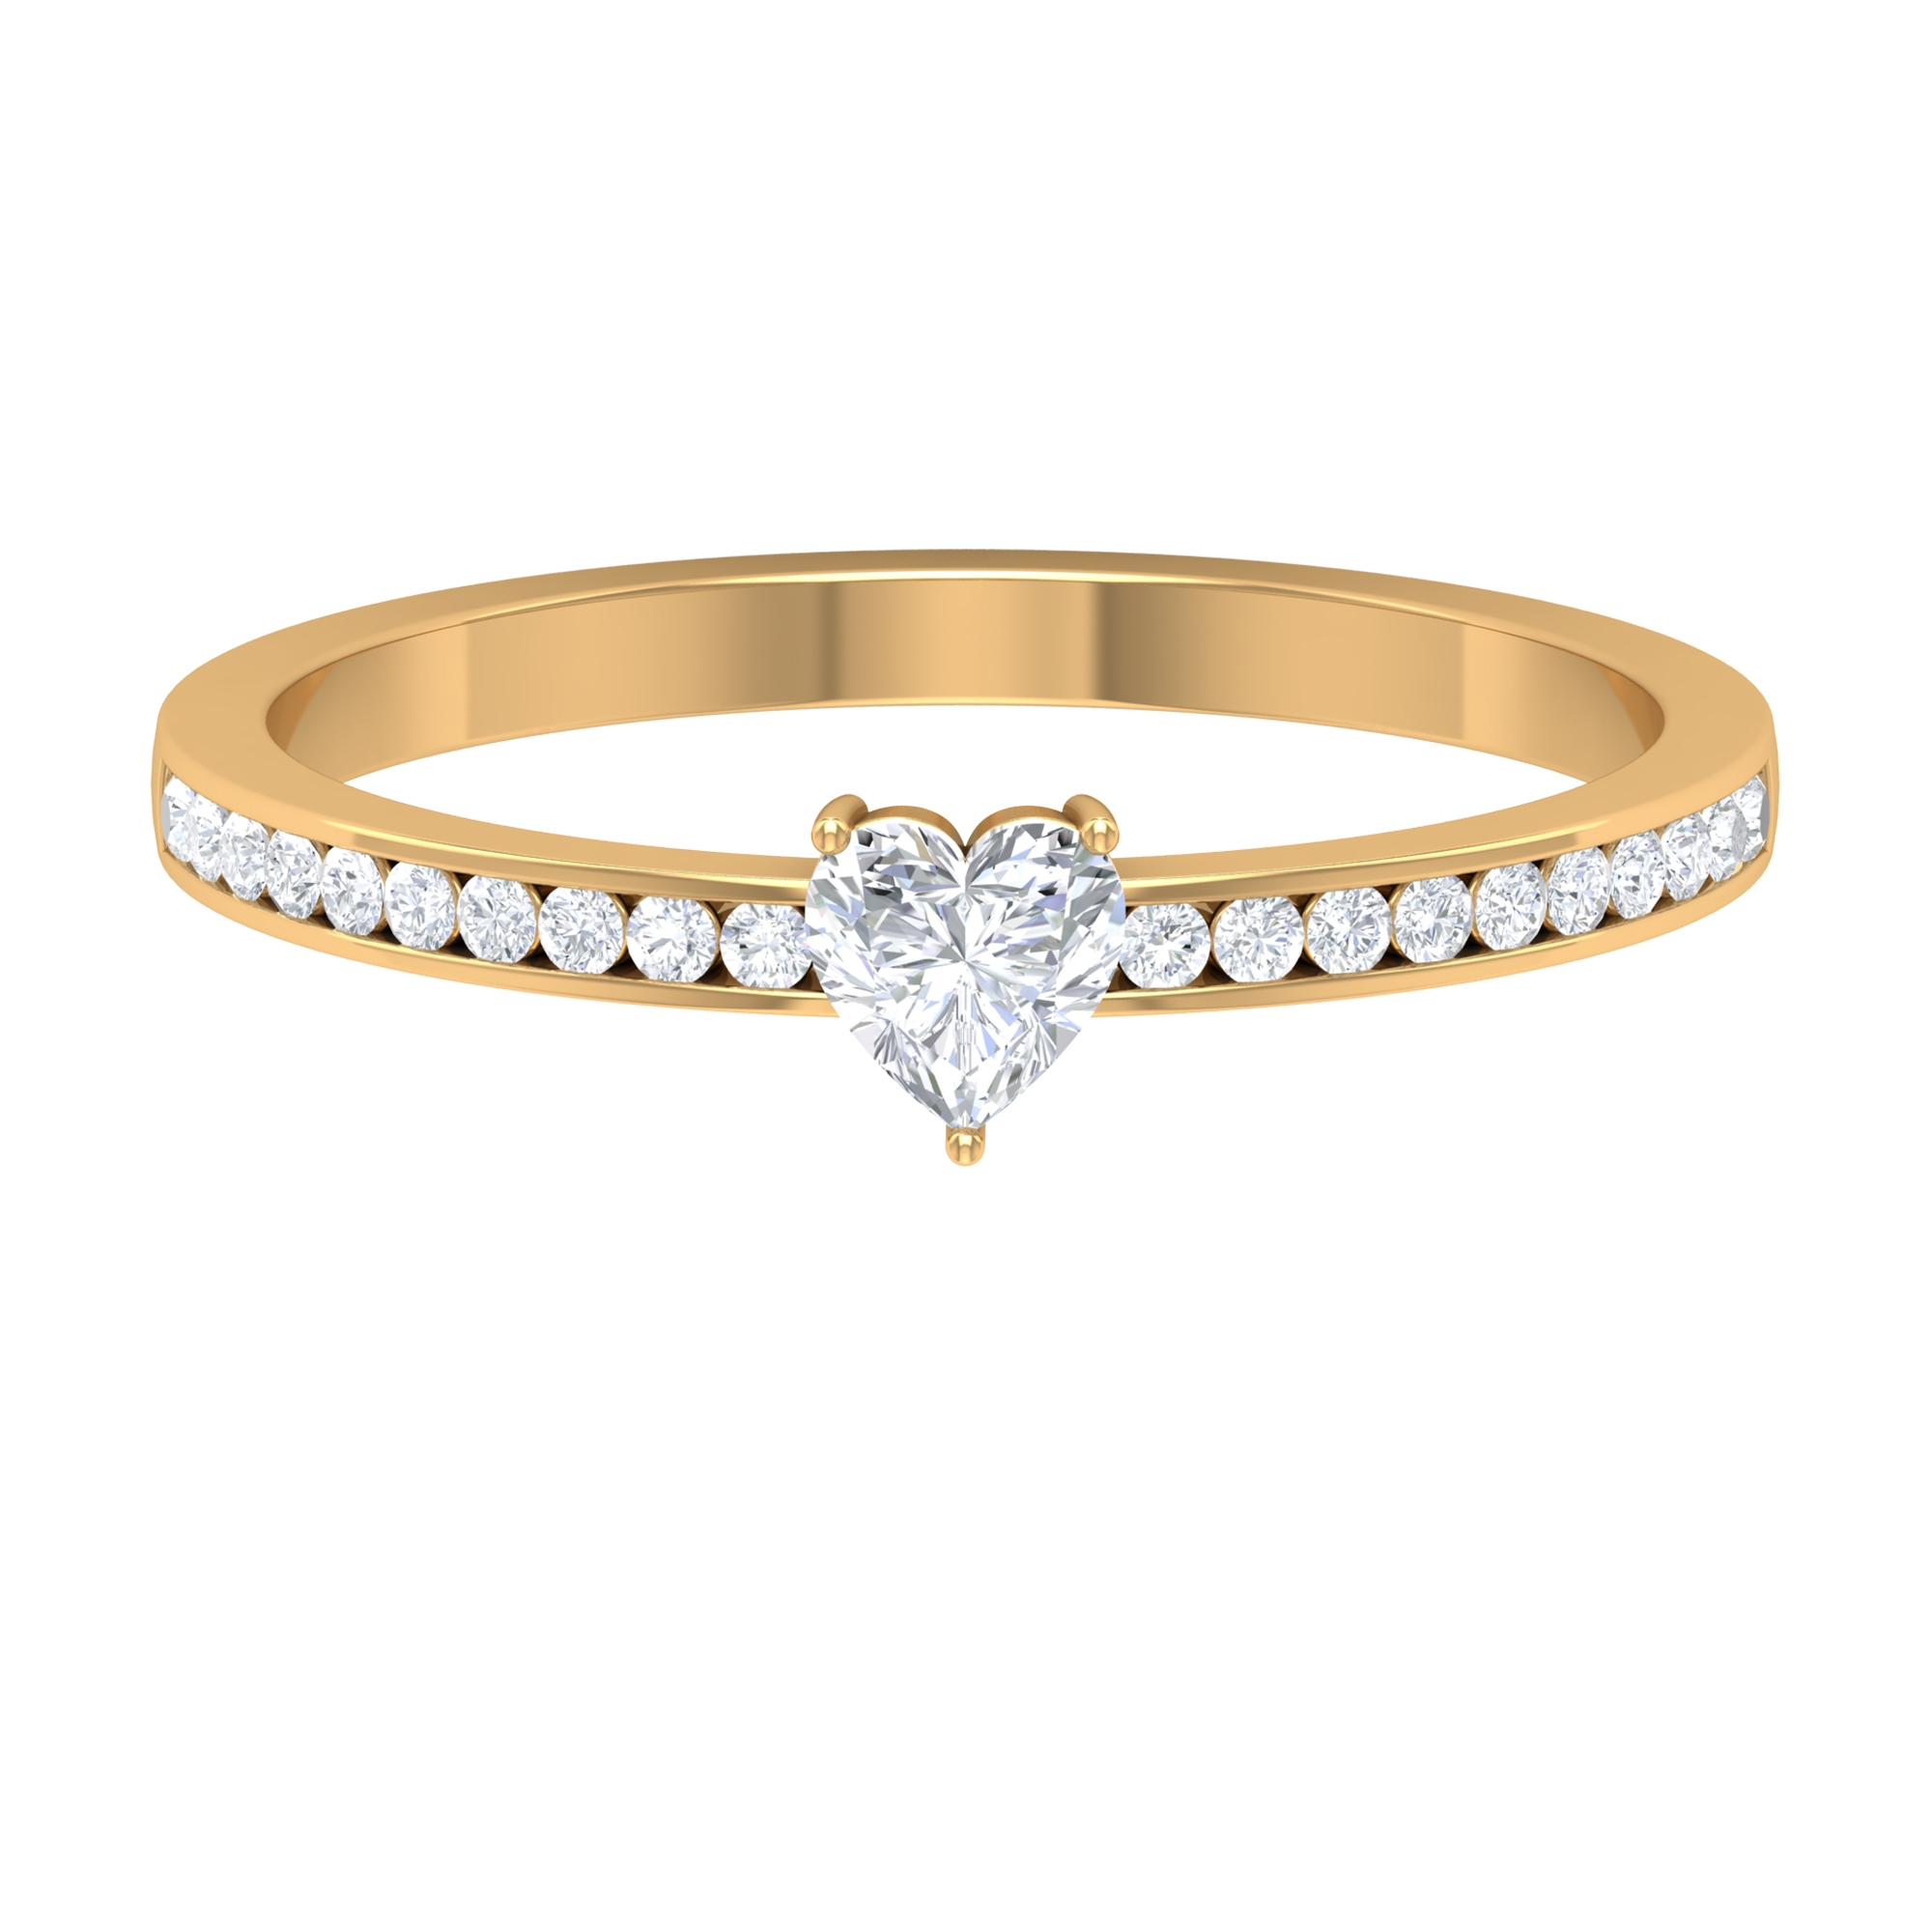 1/2 CT Heart Shape Diamond Solitaire Ring in 3 Prong Setting with Channel Set Diamond